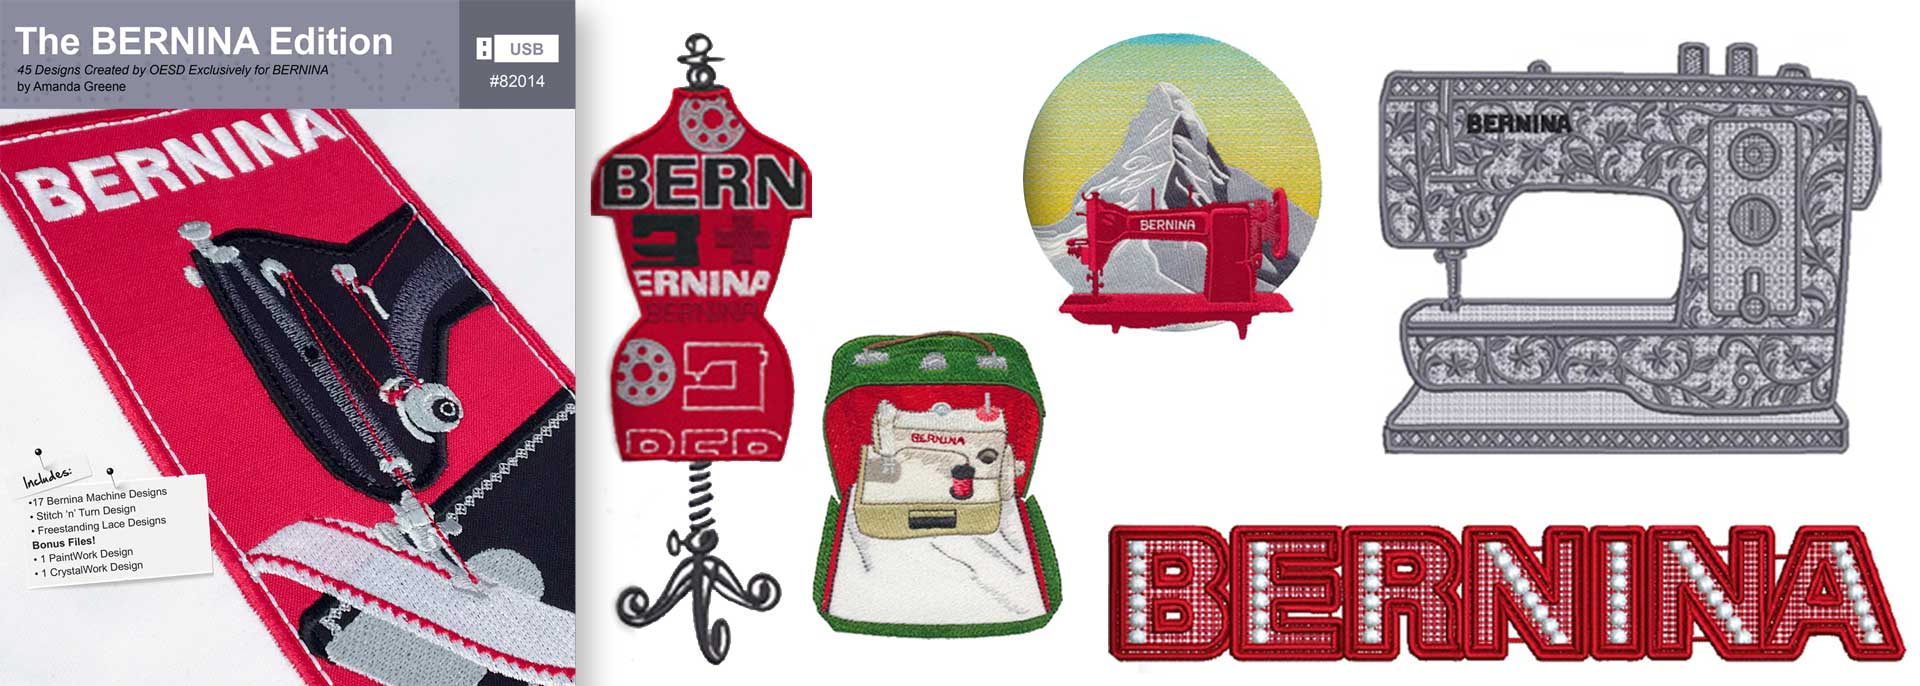 The BERNINA Edition – BERNINA Exclusive Embroidery Collection #82014